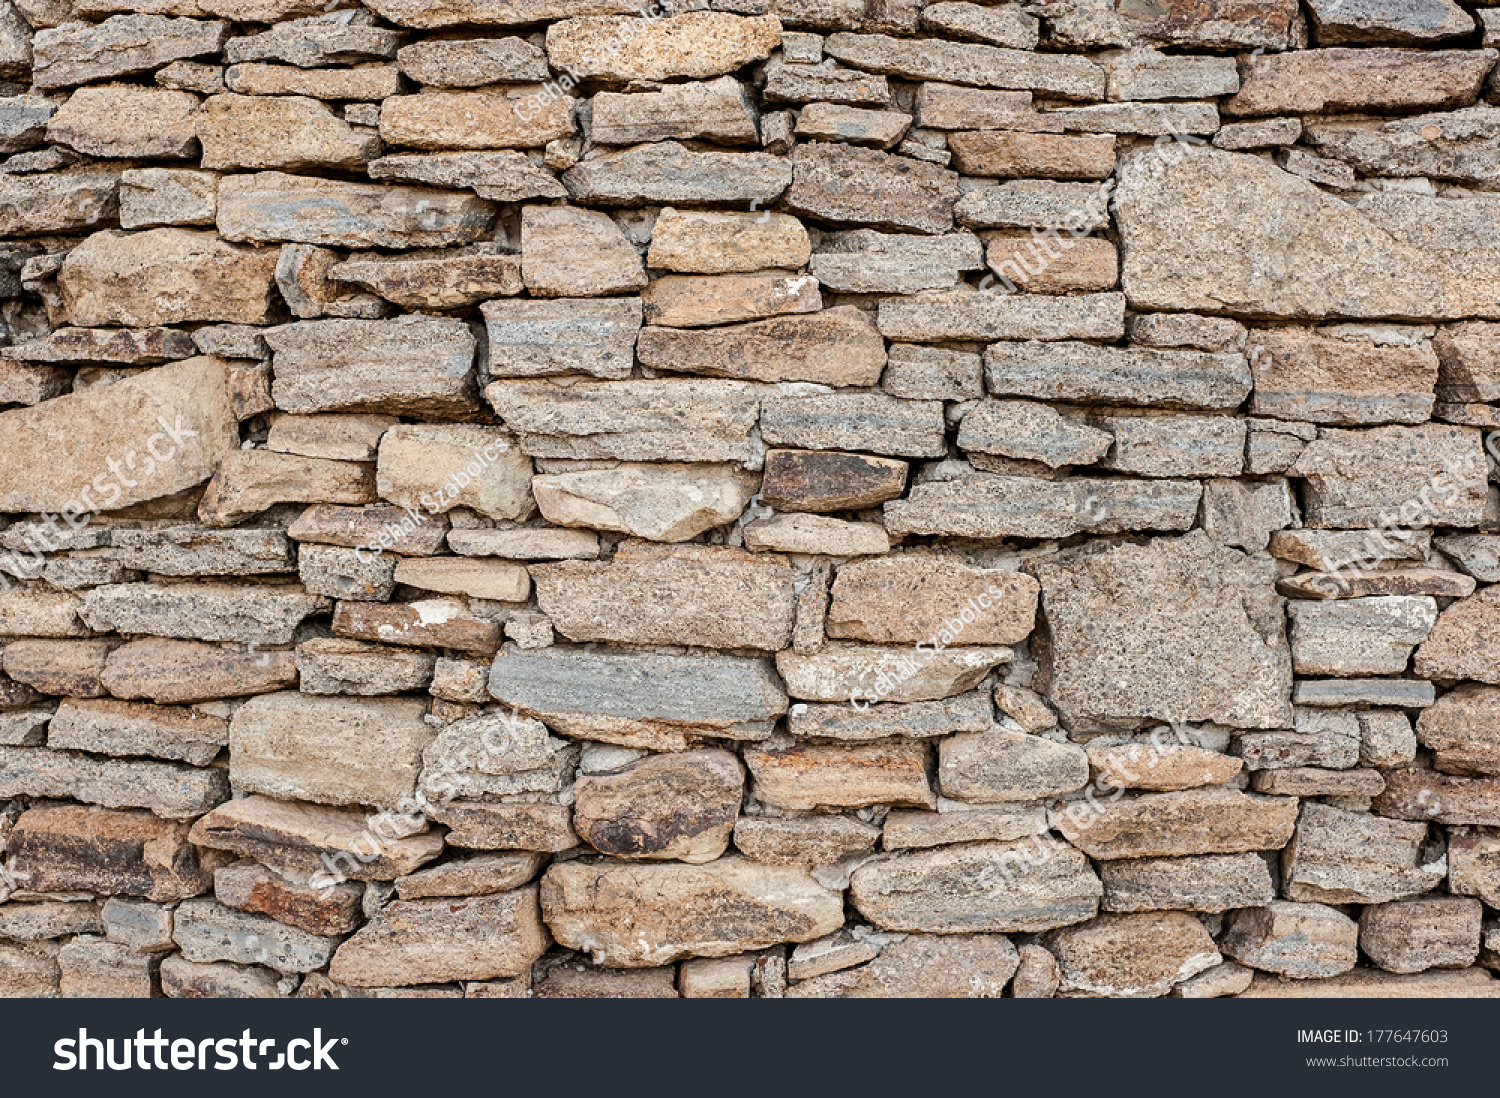 Rubble Stone Wall : Decorative old look rough surface rubble stone wall varied